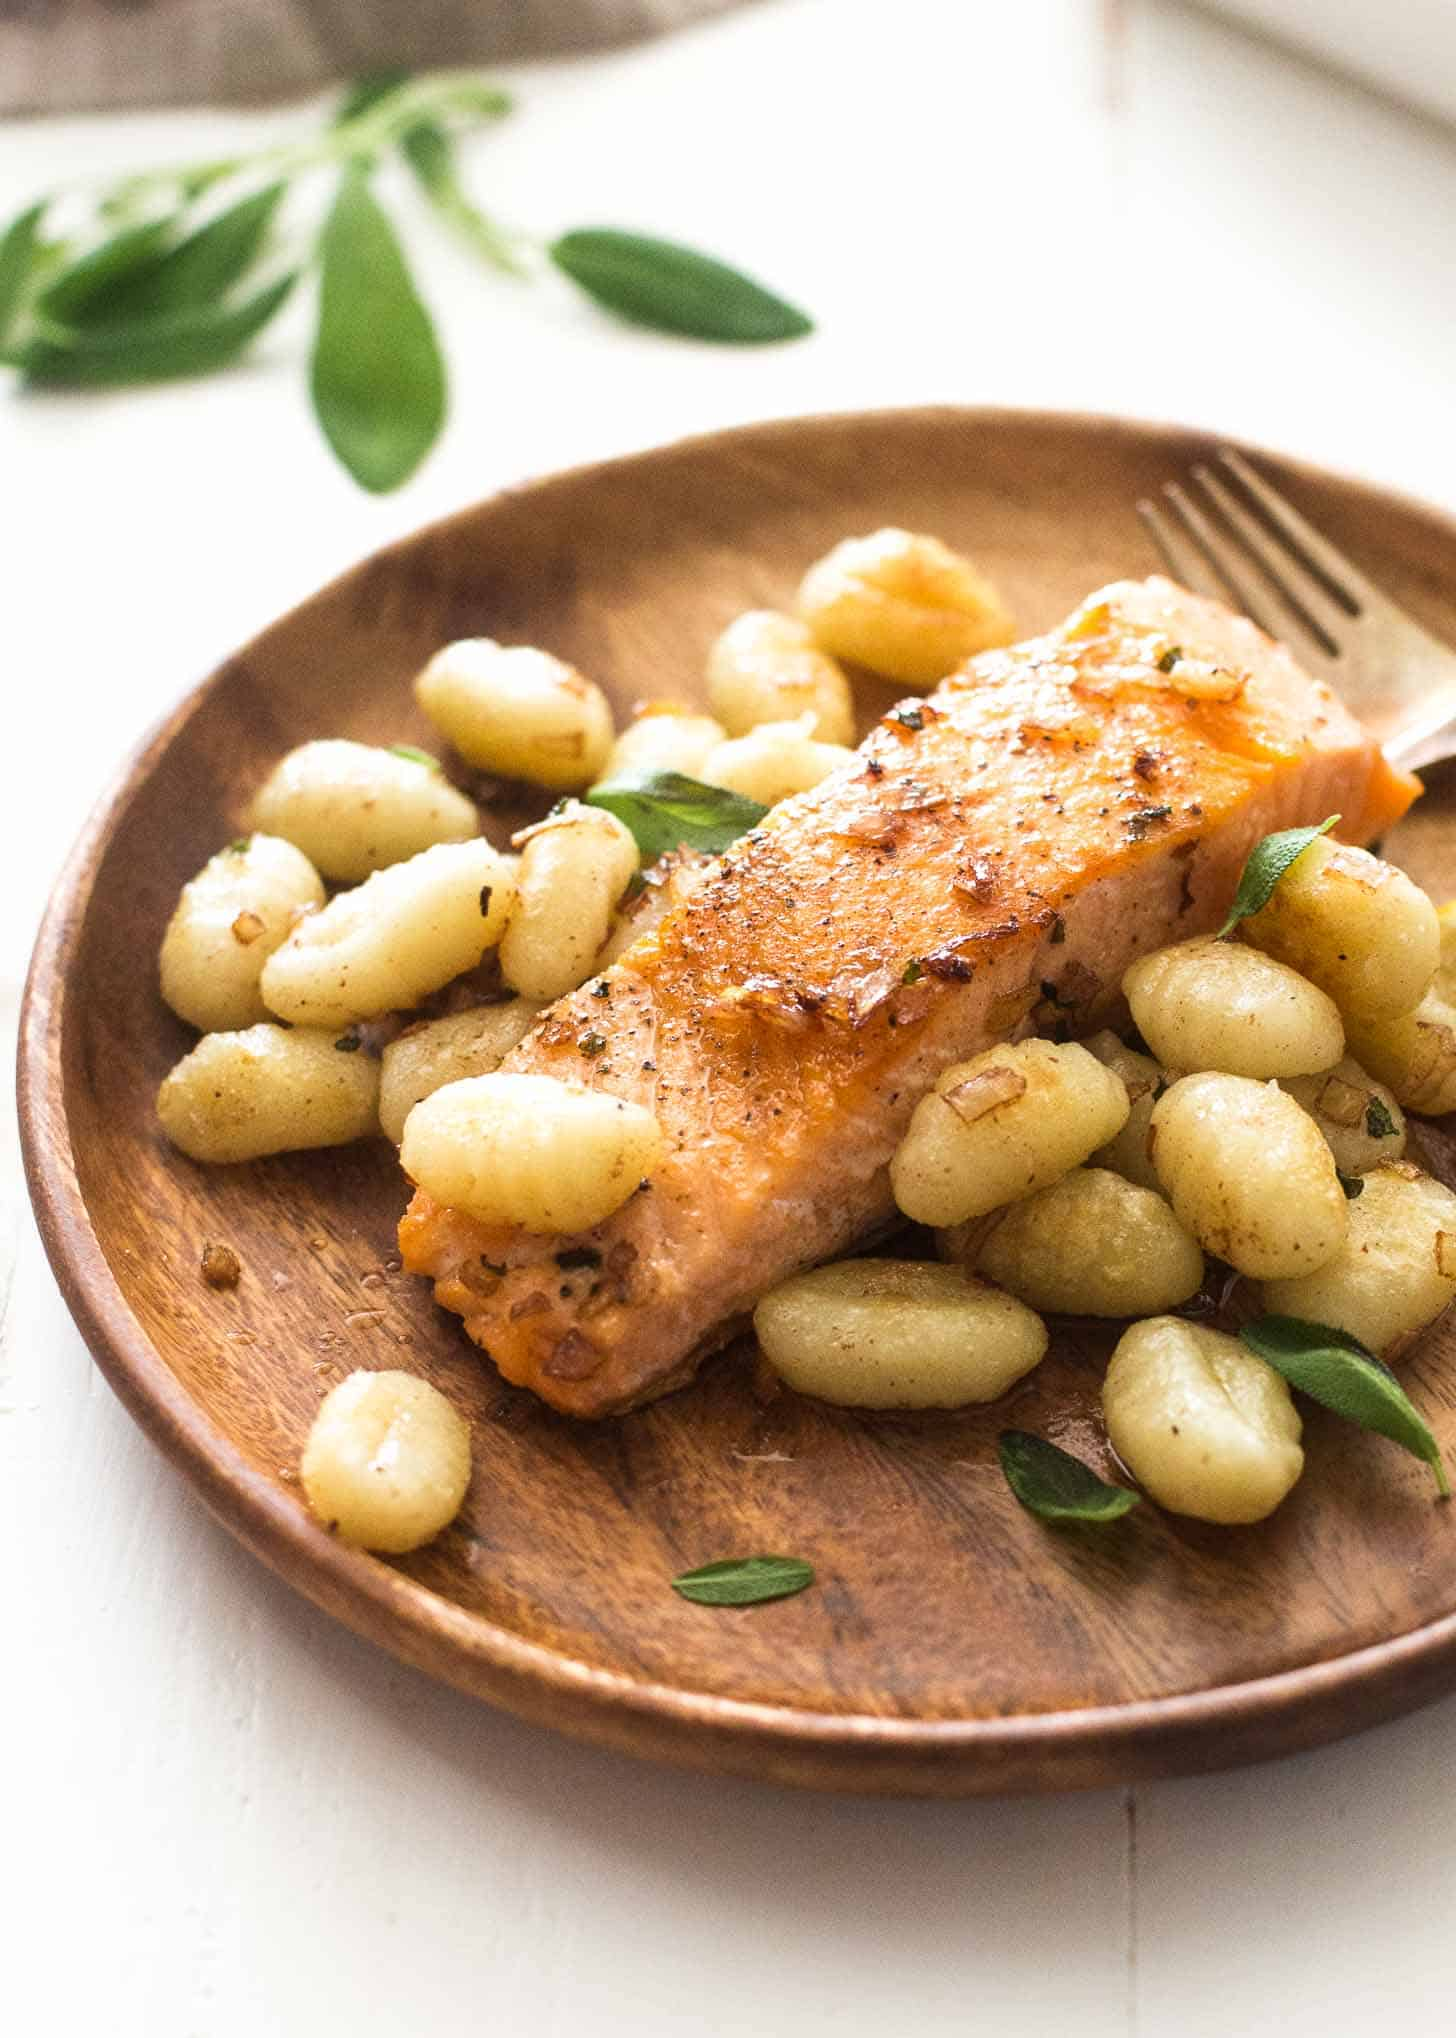 Pan Seared Salmon and Gnocchi with Sage Butter Sauce on a wooden plate